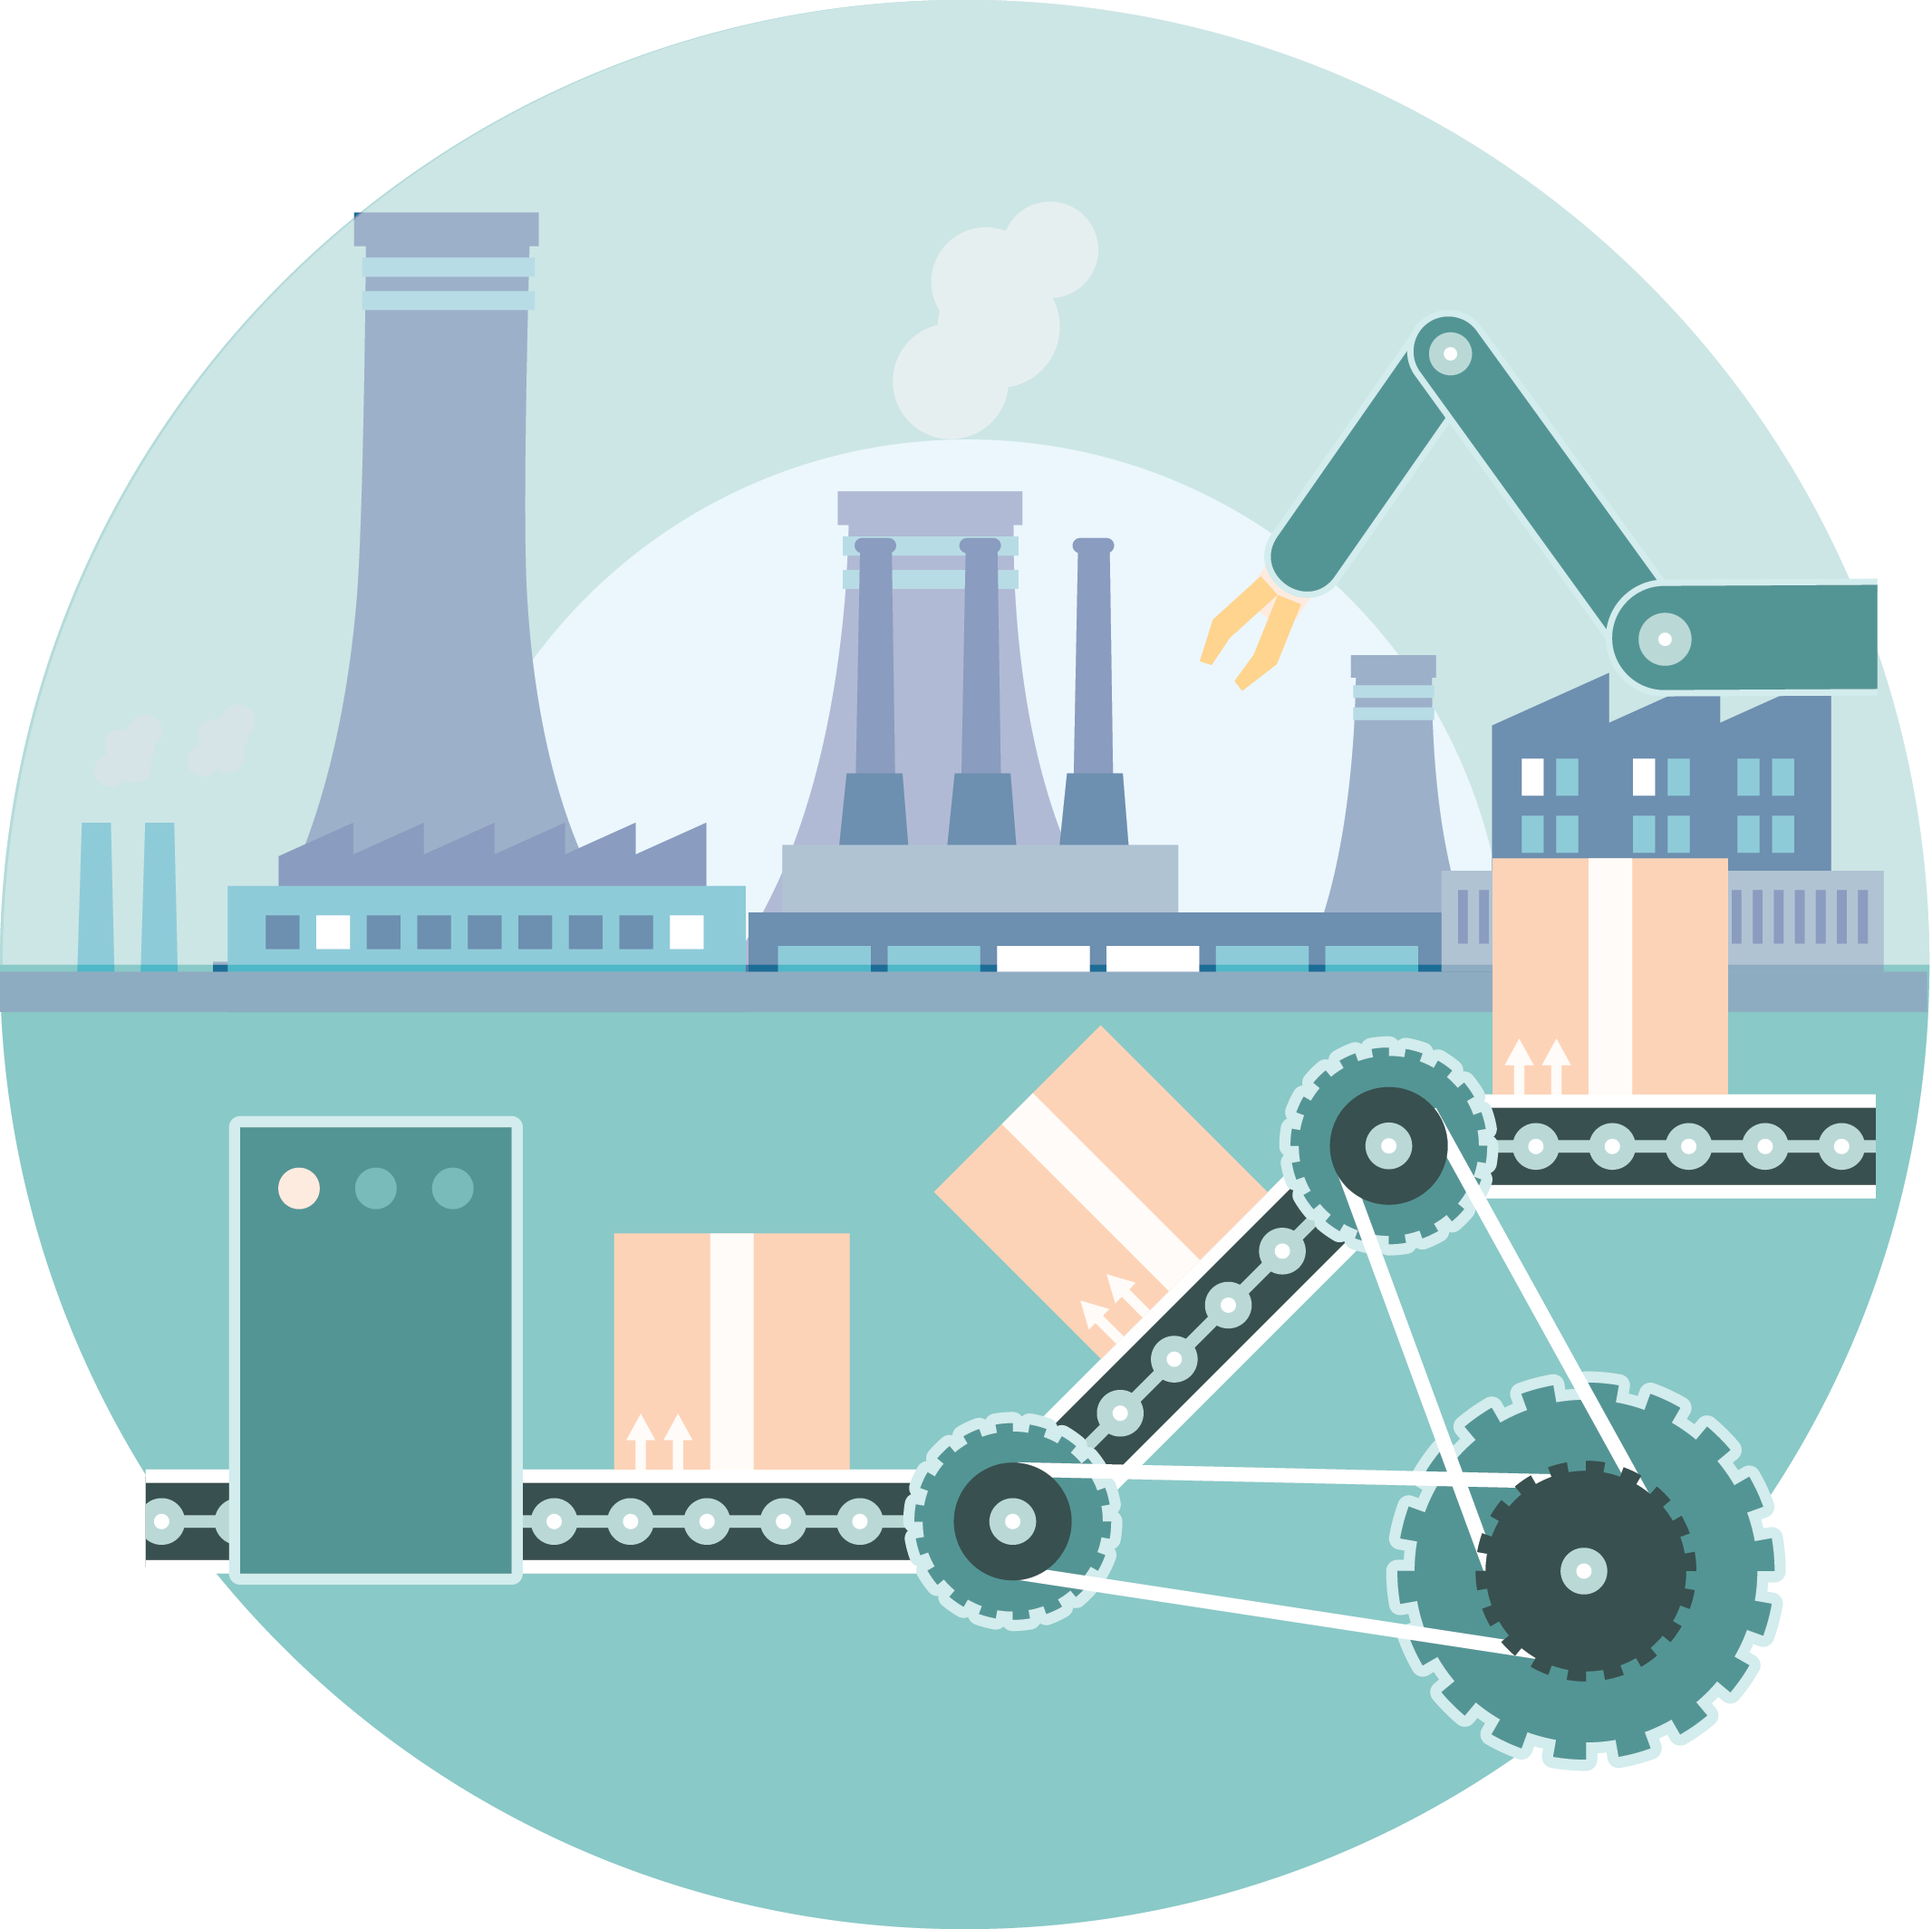 Factories clipart generic. Factory automation vyuti factoryautomation